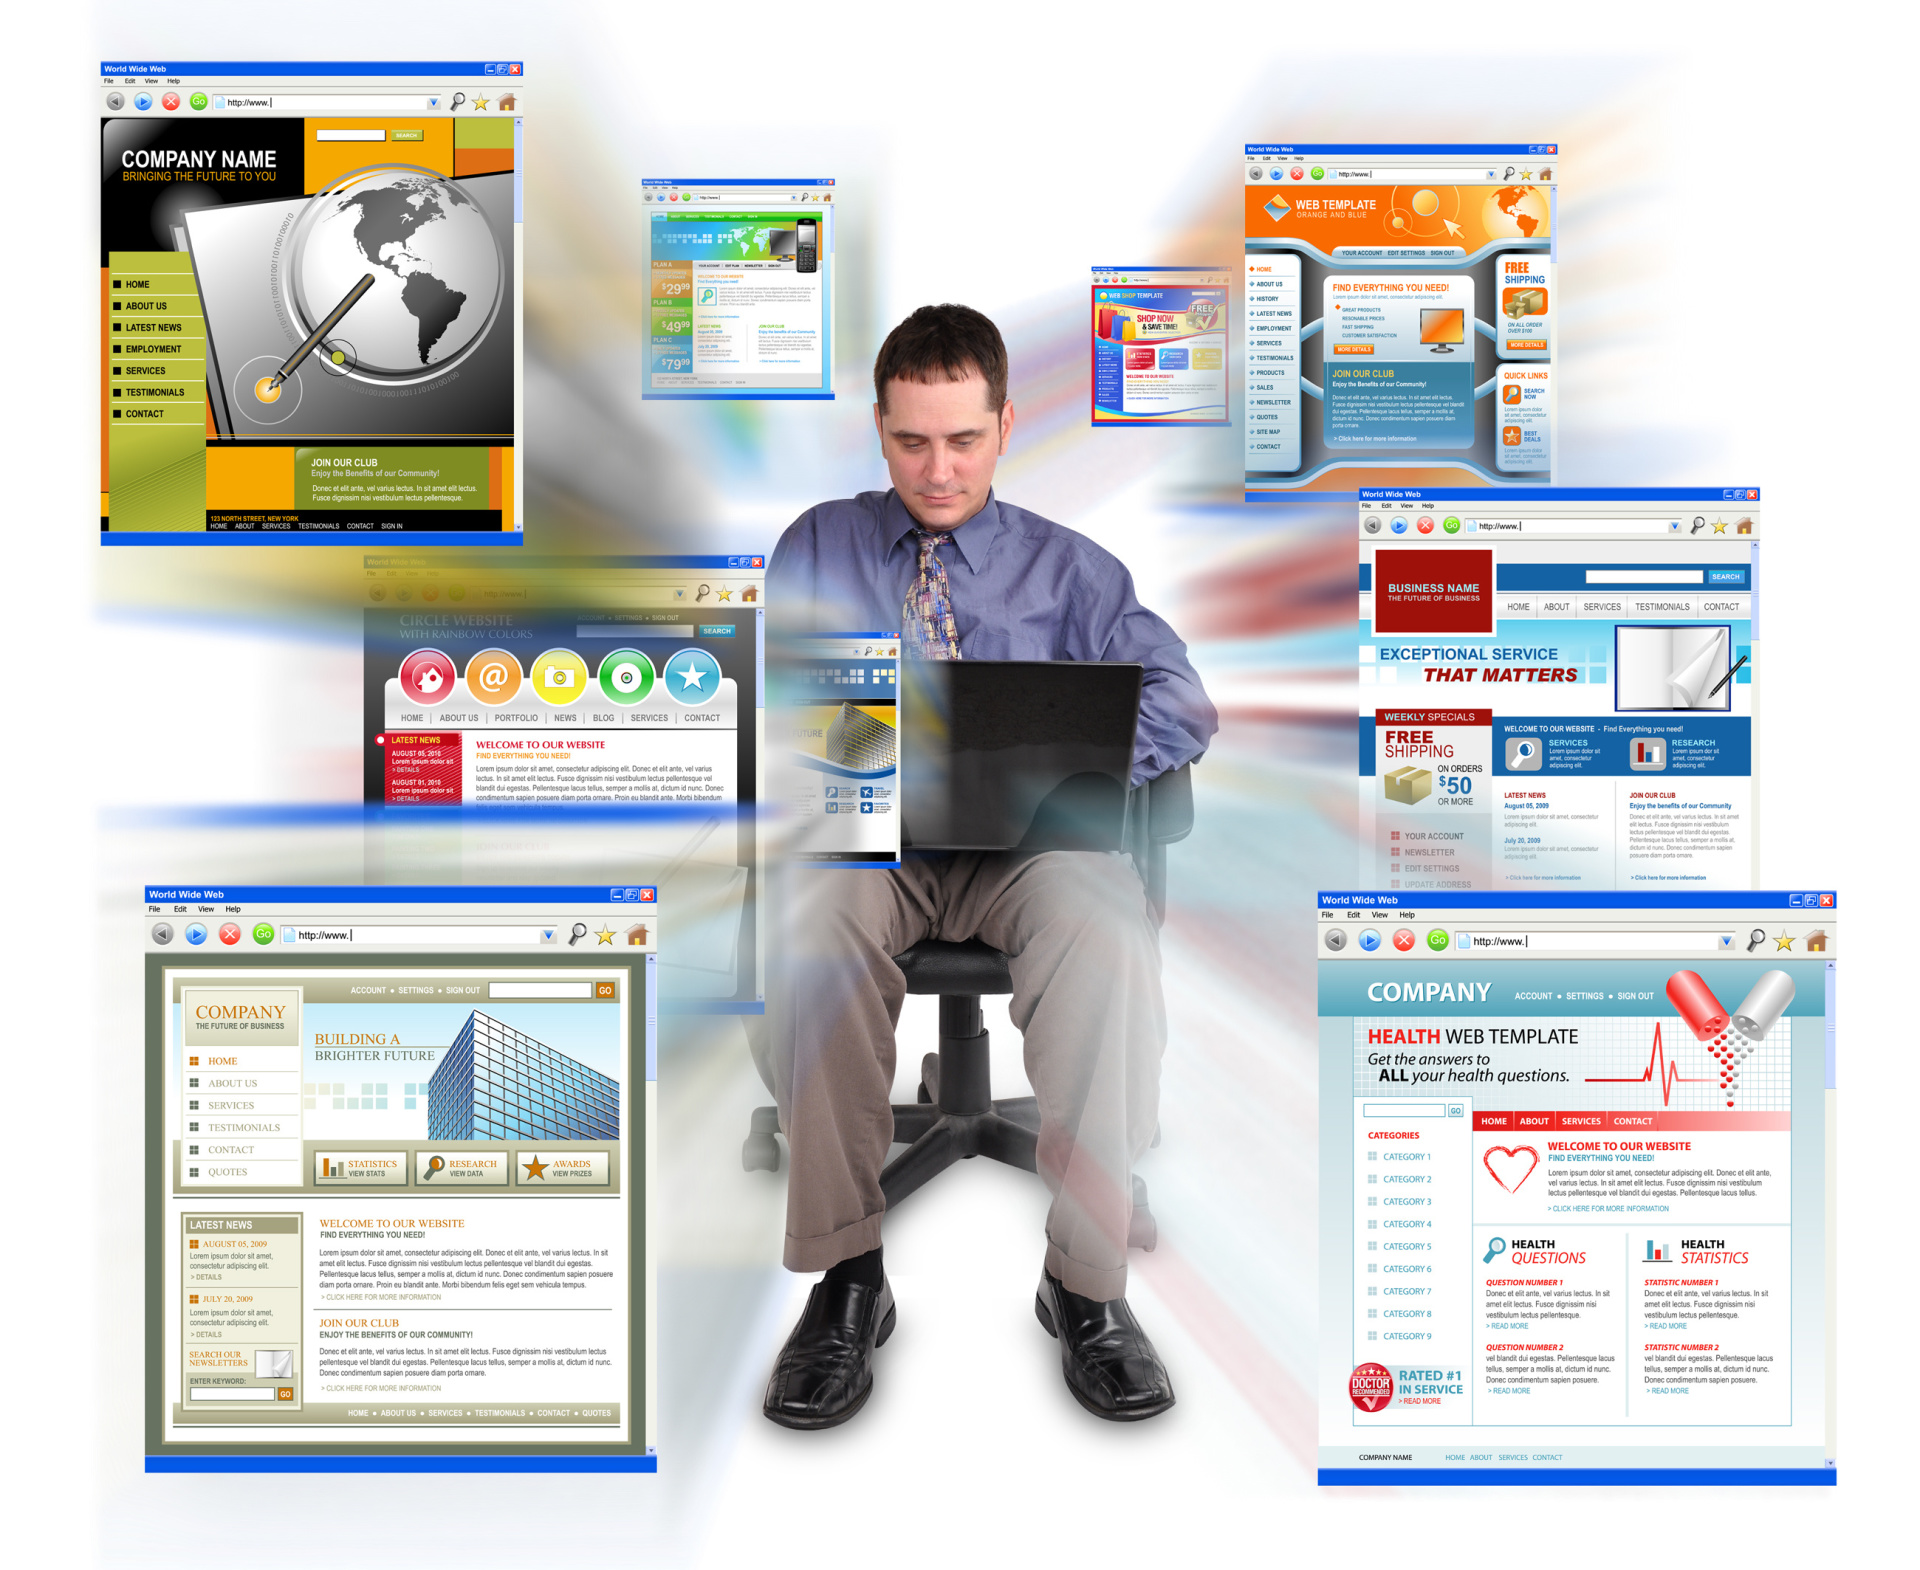 Best free ways to promote online business